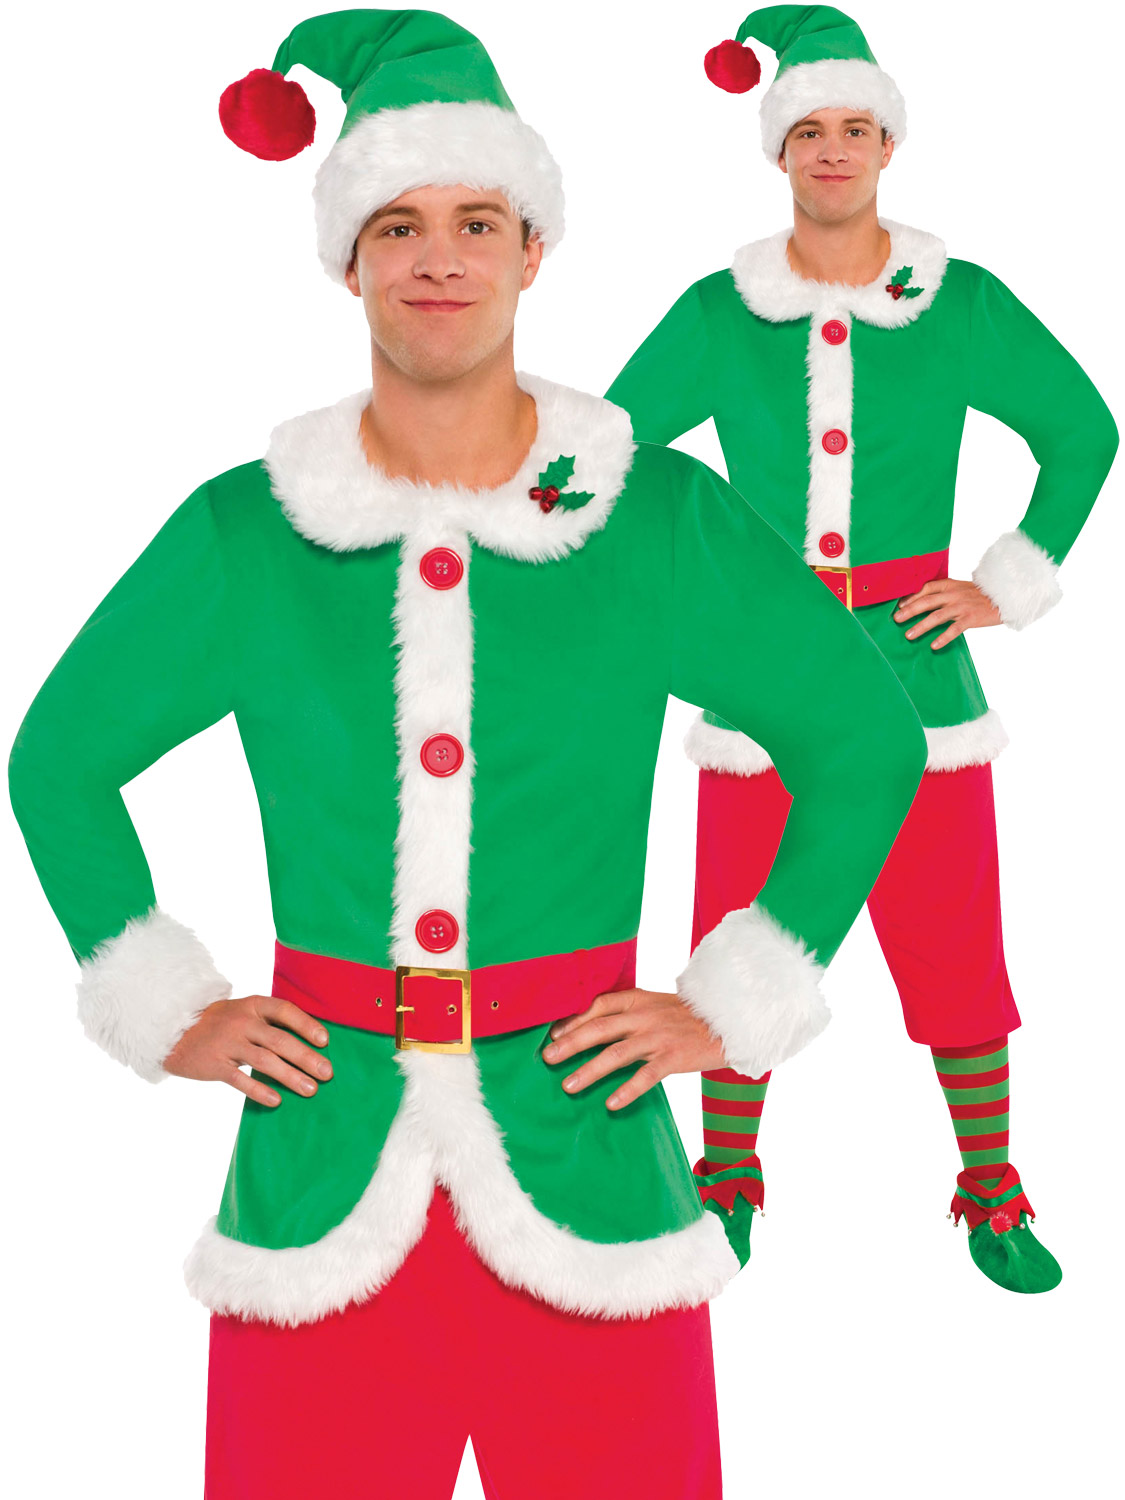 Mens elf costume adult christmas santas helper fancy dress elves transform yourself into one of santas trusty helpers with this mens elf costume ideal if you are dressing up as a group this christmas solutioingenieria Choice Image